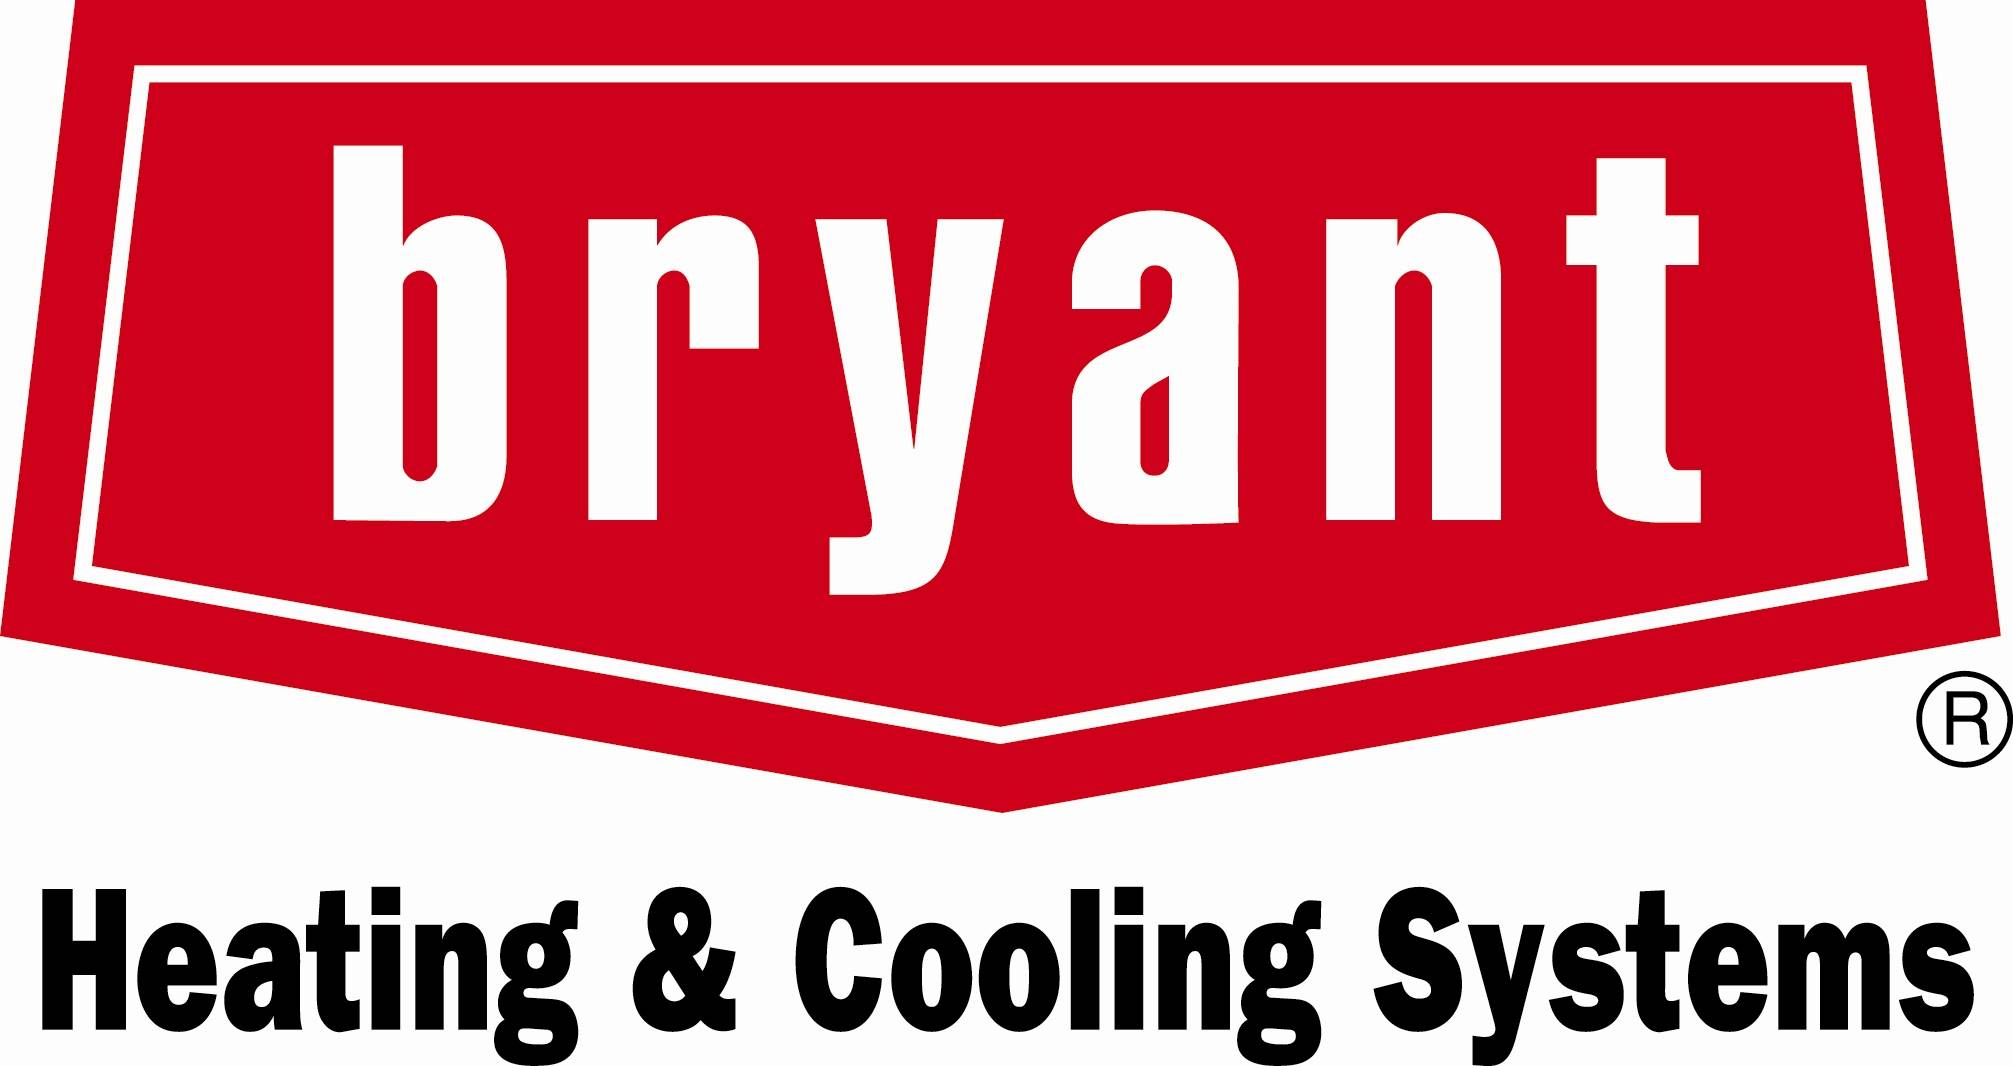 We provide gas furnace repairs on Bryant HVAC systems for the Charlotte NC & surrounding areas